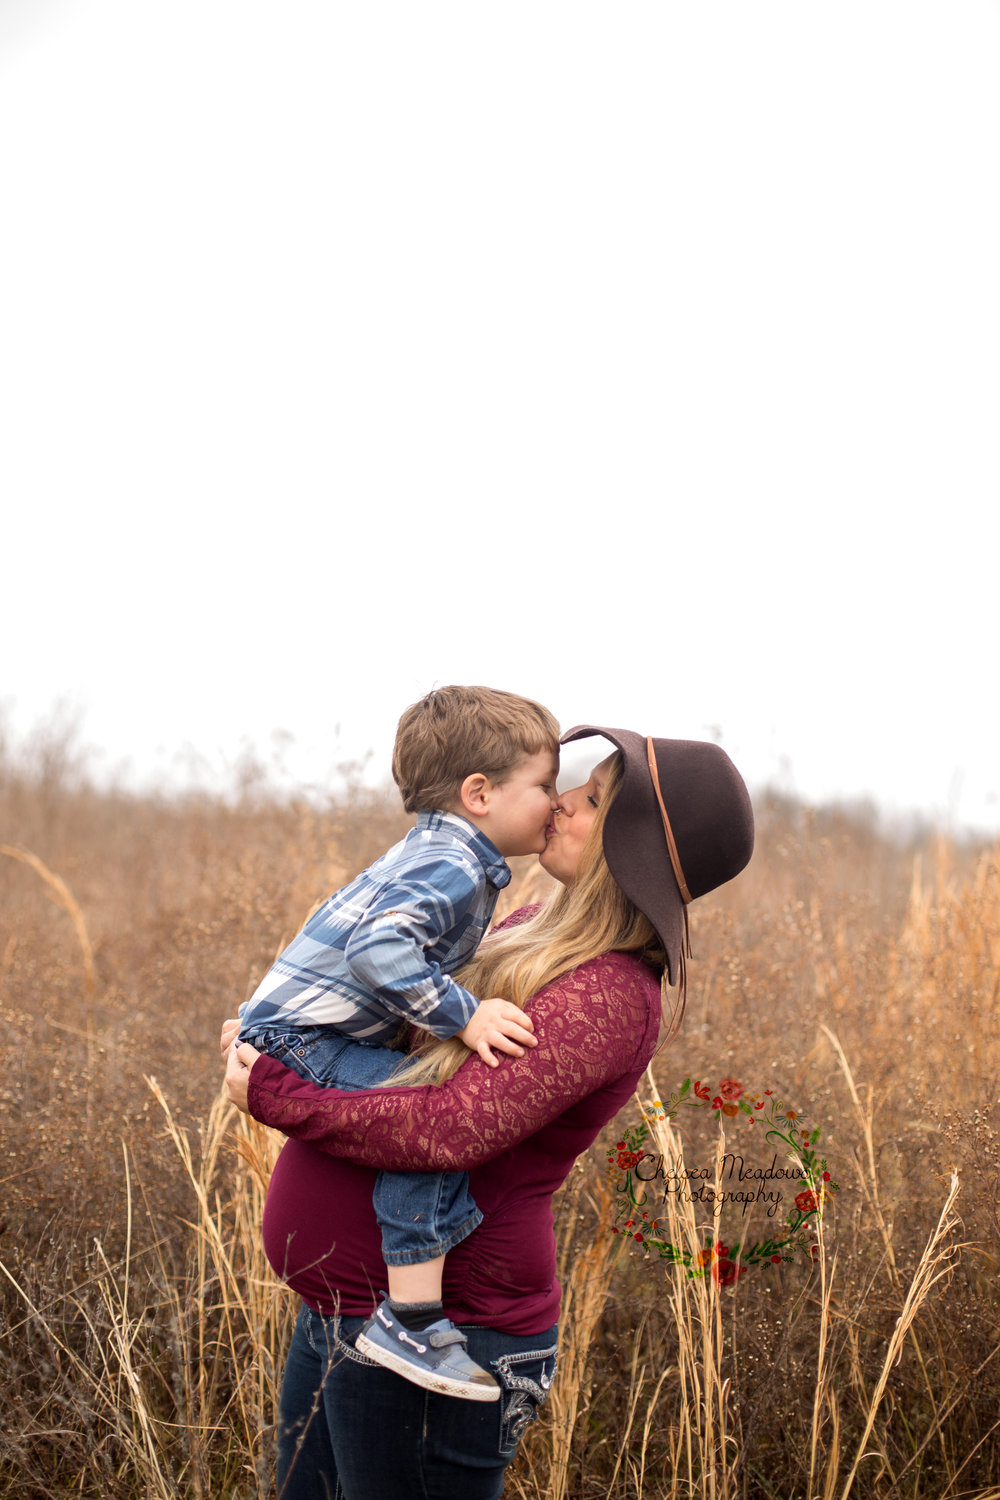 Jessica and Family Maternity Session - Nashville Maternity Photographer - Chelsea Meadows Photography (42).jpg